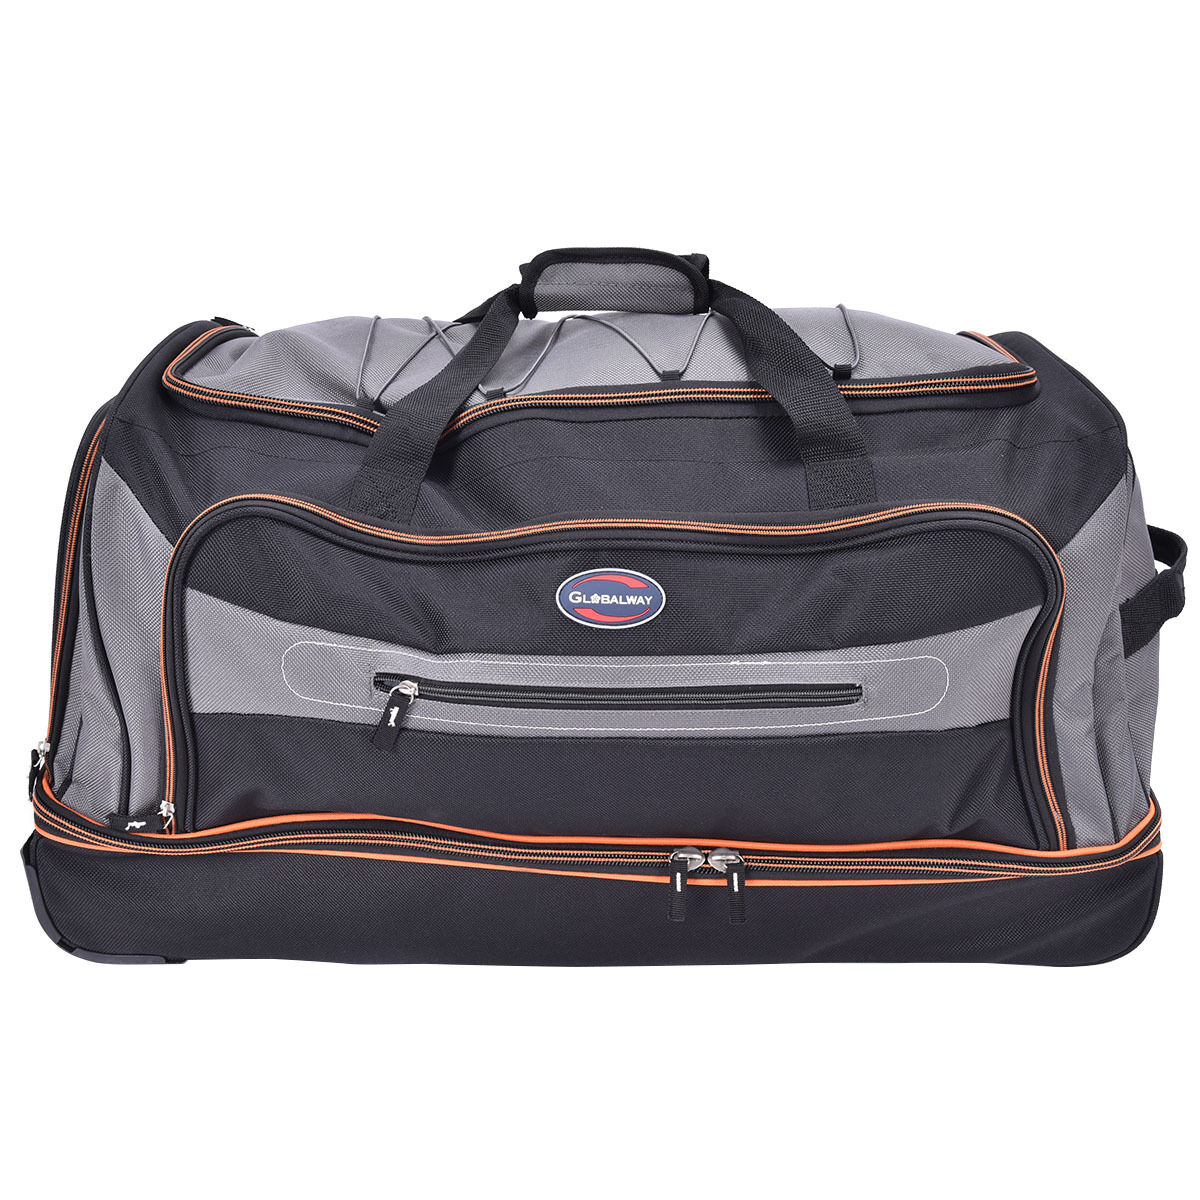 30 drop bottom rolling wheeled duffel bag carry on luggage travel suitcase picclick. Black Bedroom Furniture Sets. Home Design Ideas